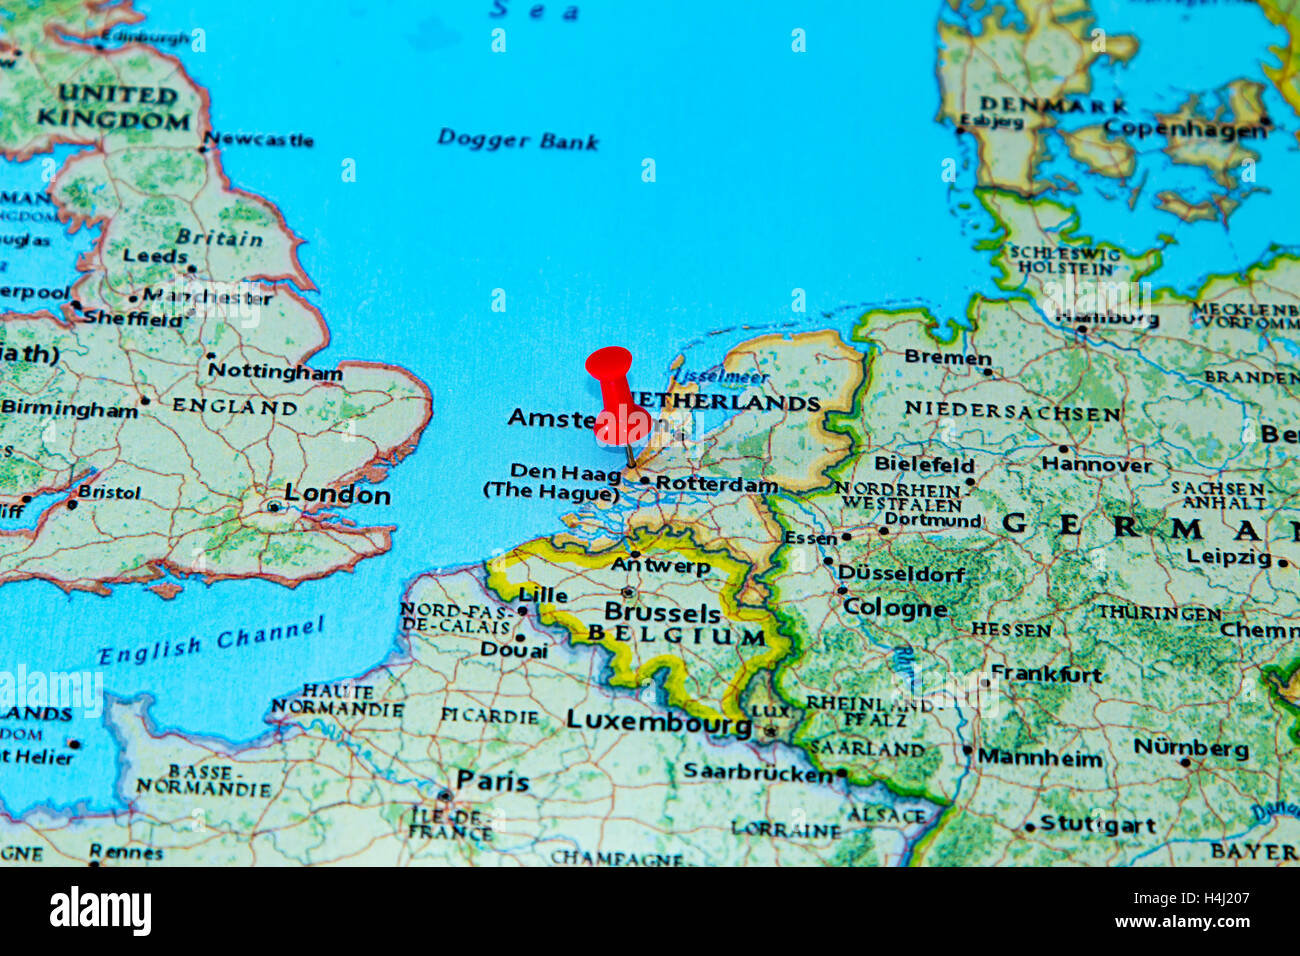 The Hague Netherlands Pinned On A Map Of Europe Photo – The Hague Tourist Map